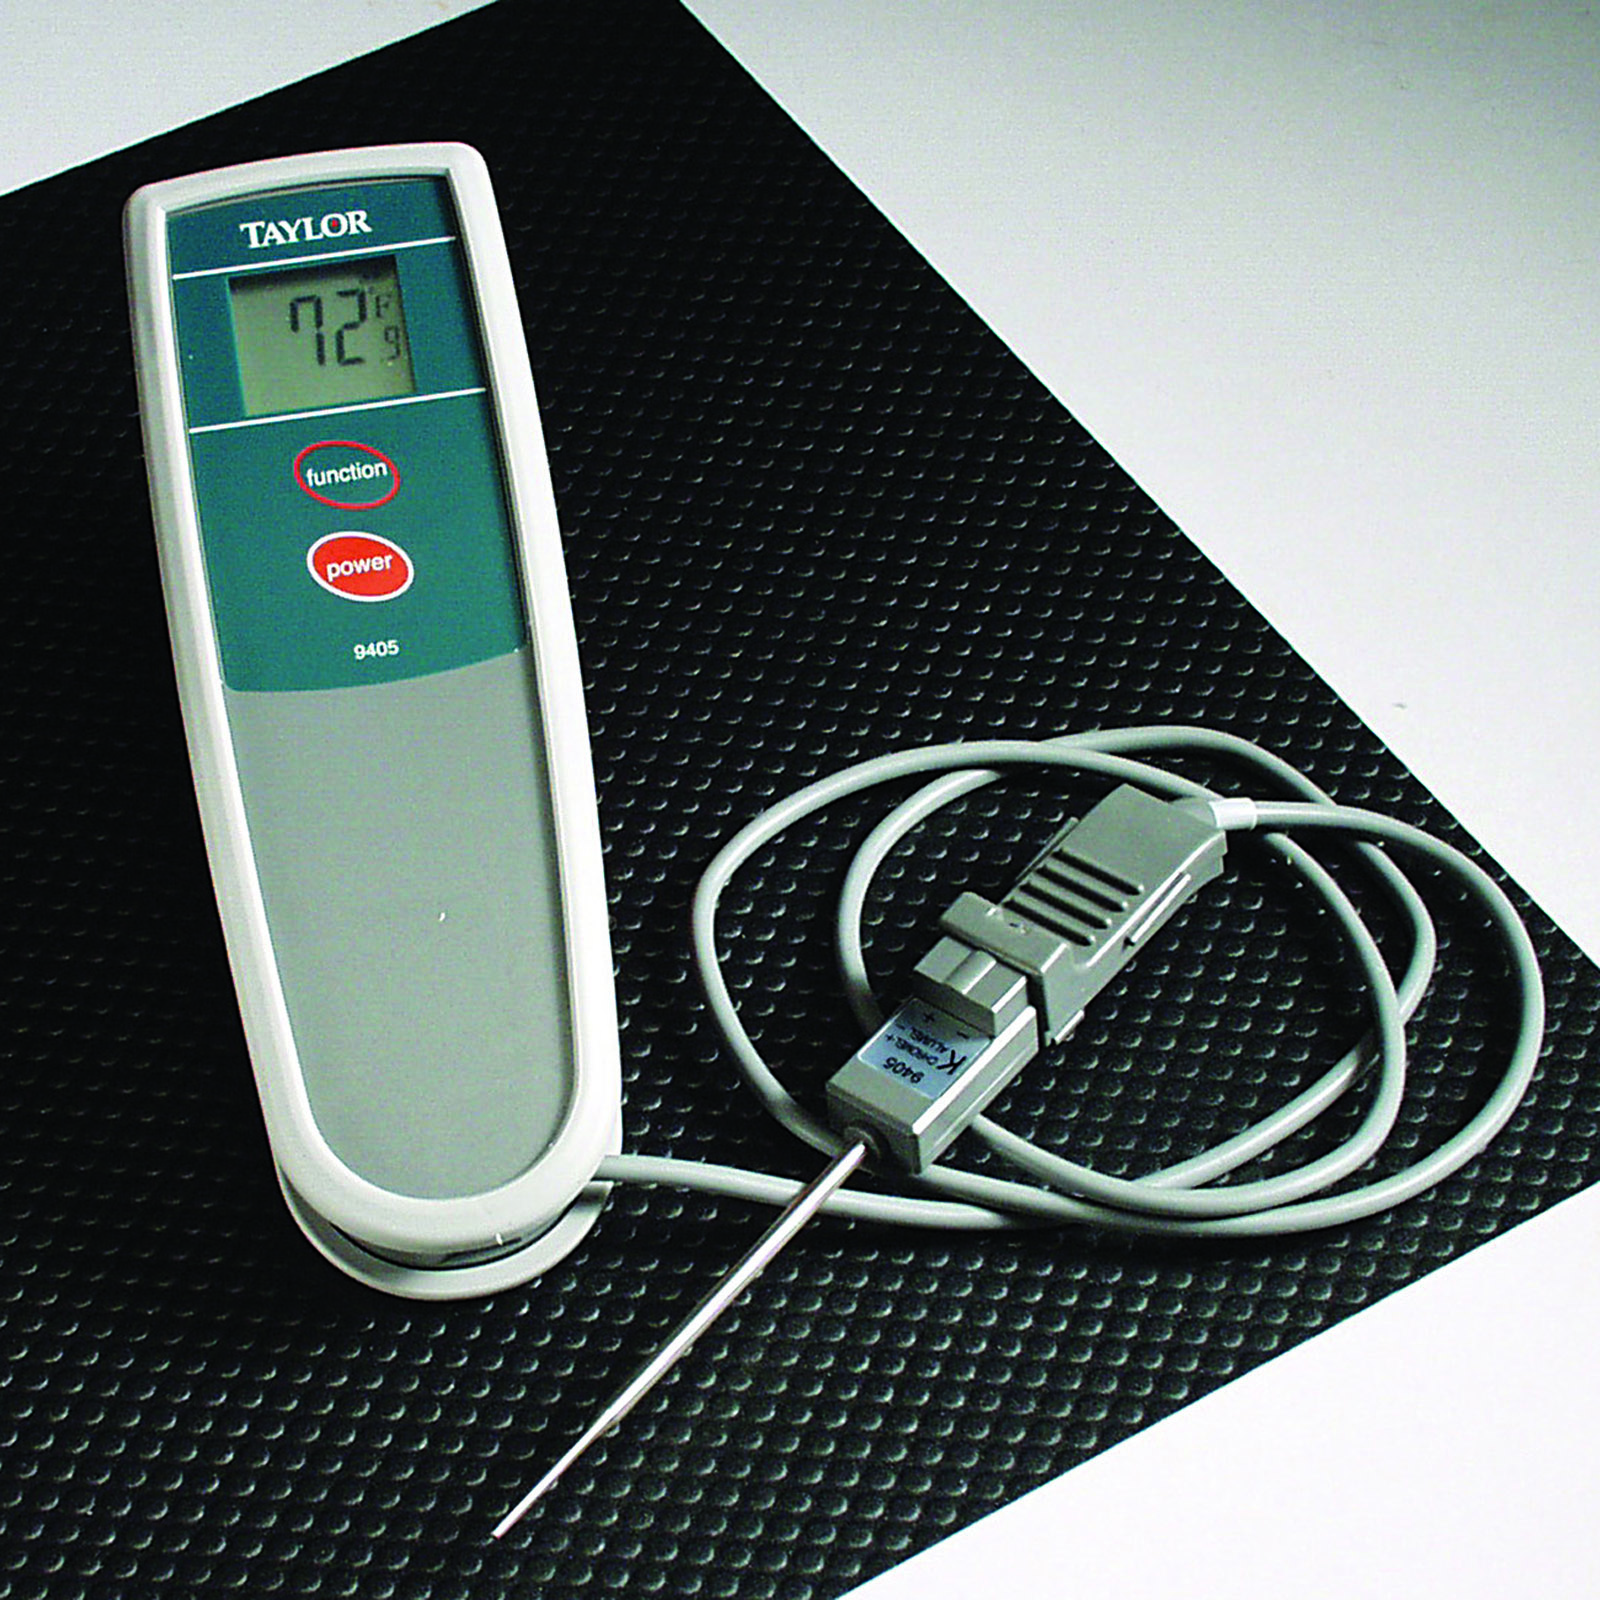 Taylor Precision 9405 thermometer, thermocouple